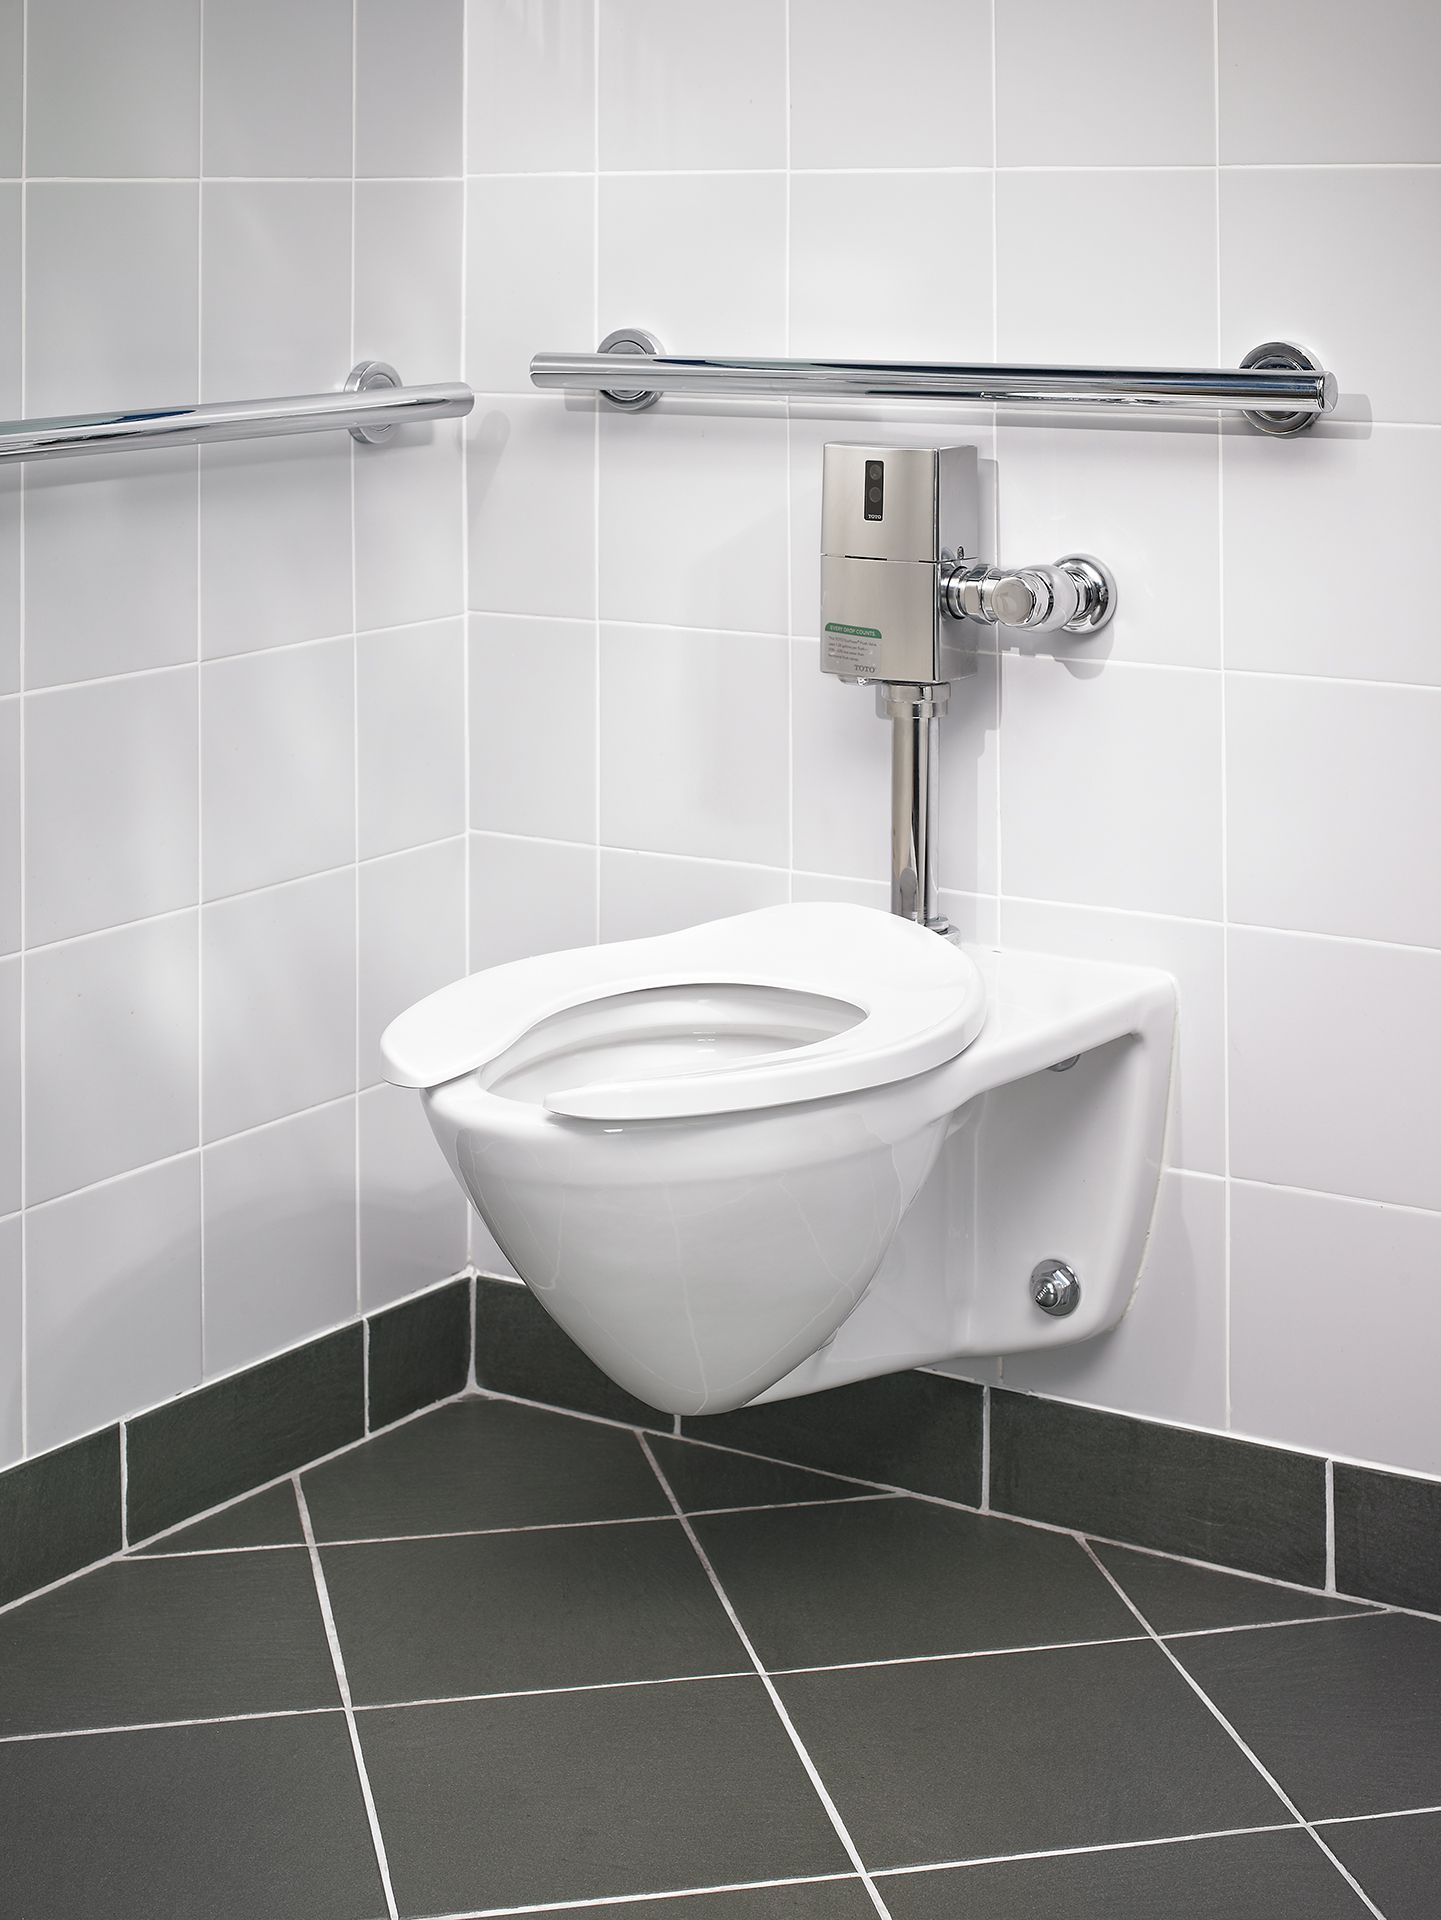 Totousa Ct708e 01 Commercial Flushometer High Efficiency Toilet 1 28 Gpf Elongated Bowl Ct708e 01 Snyder Diamond